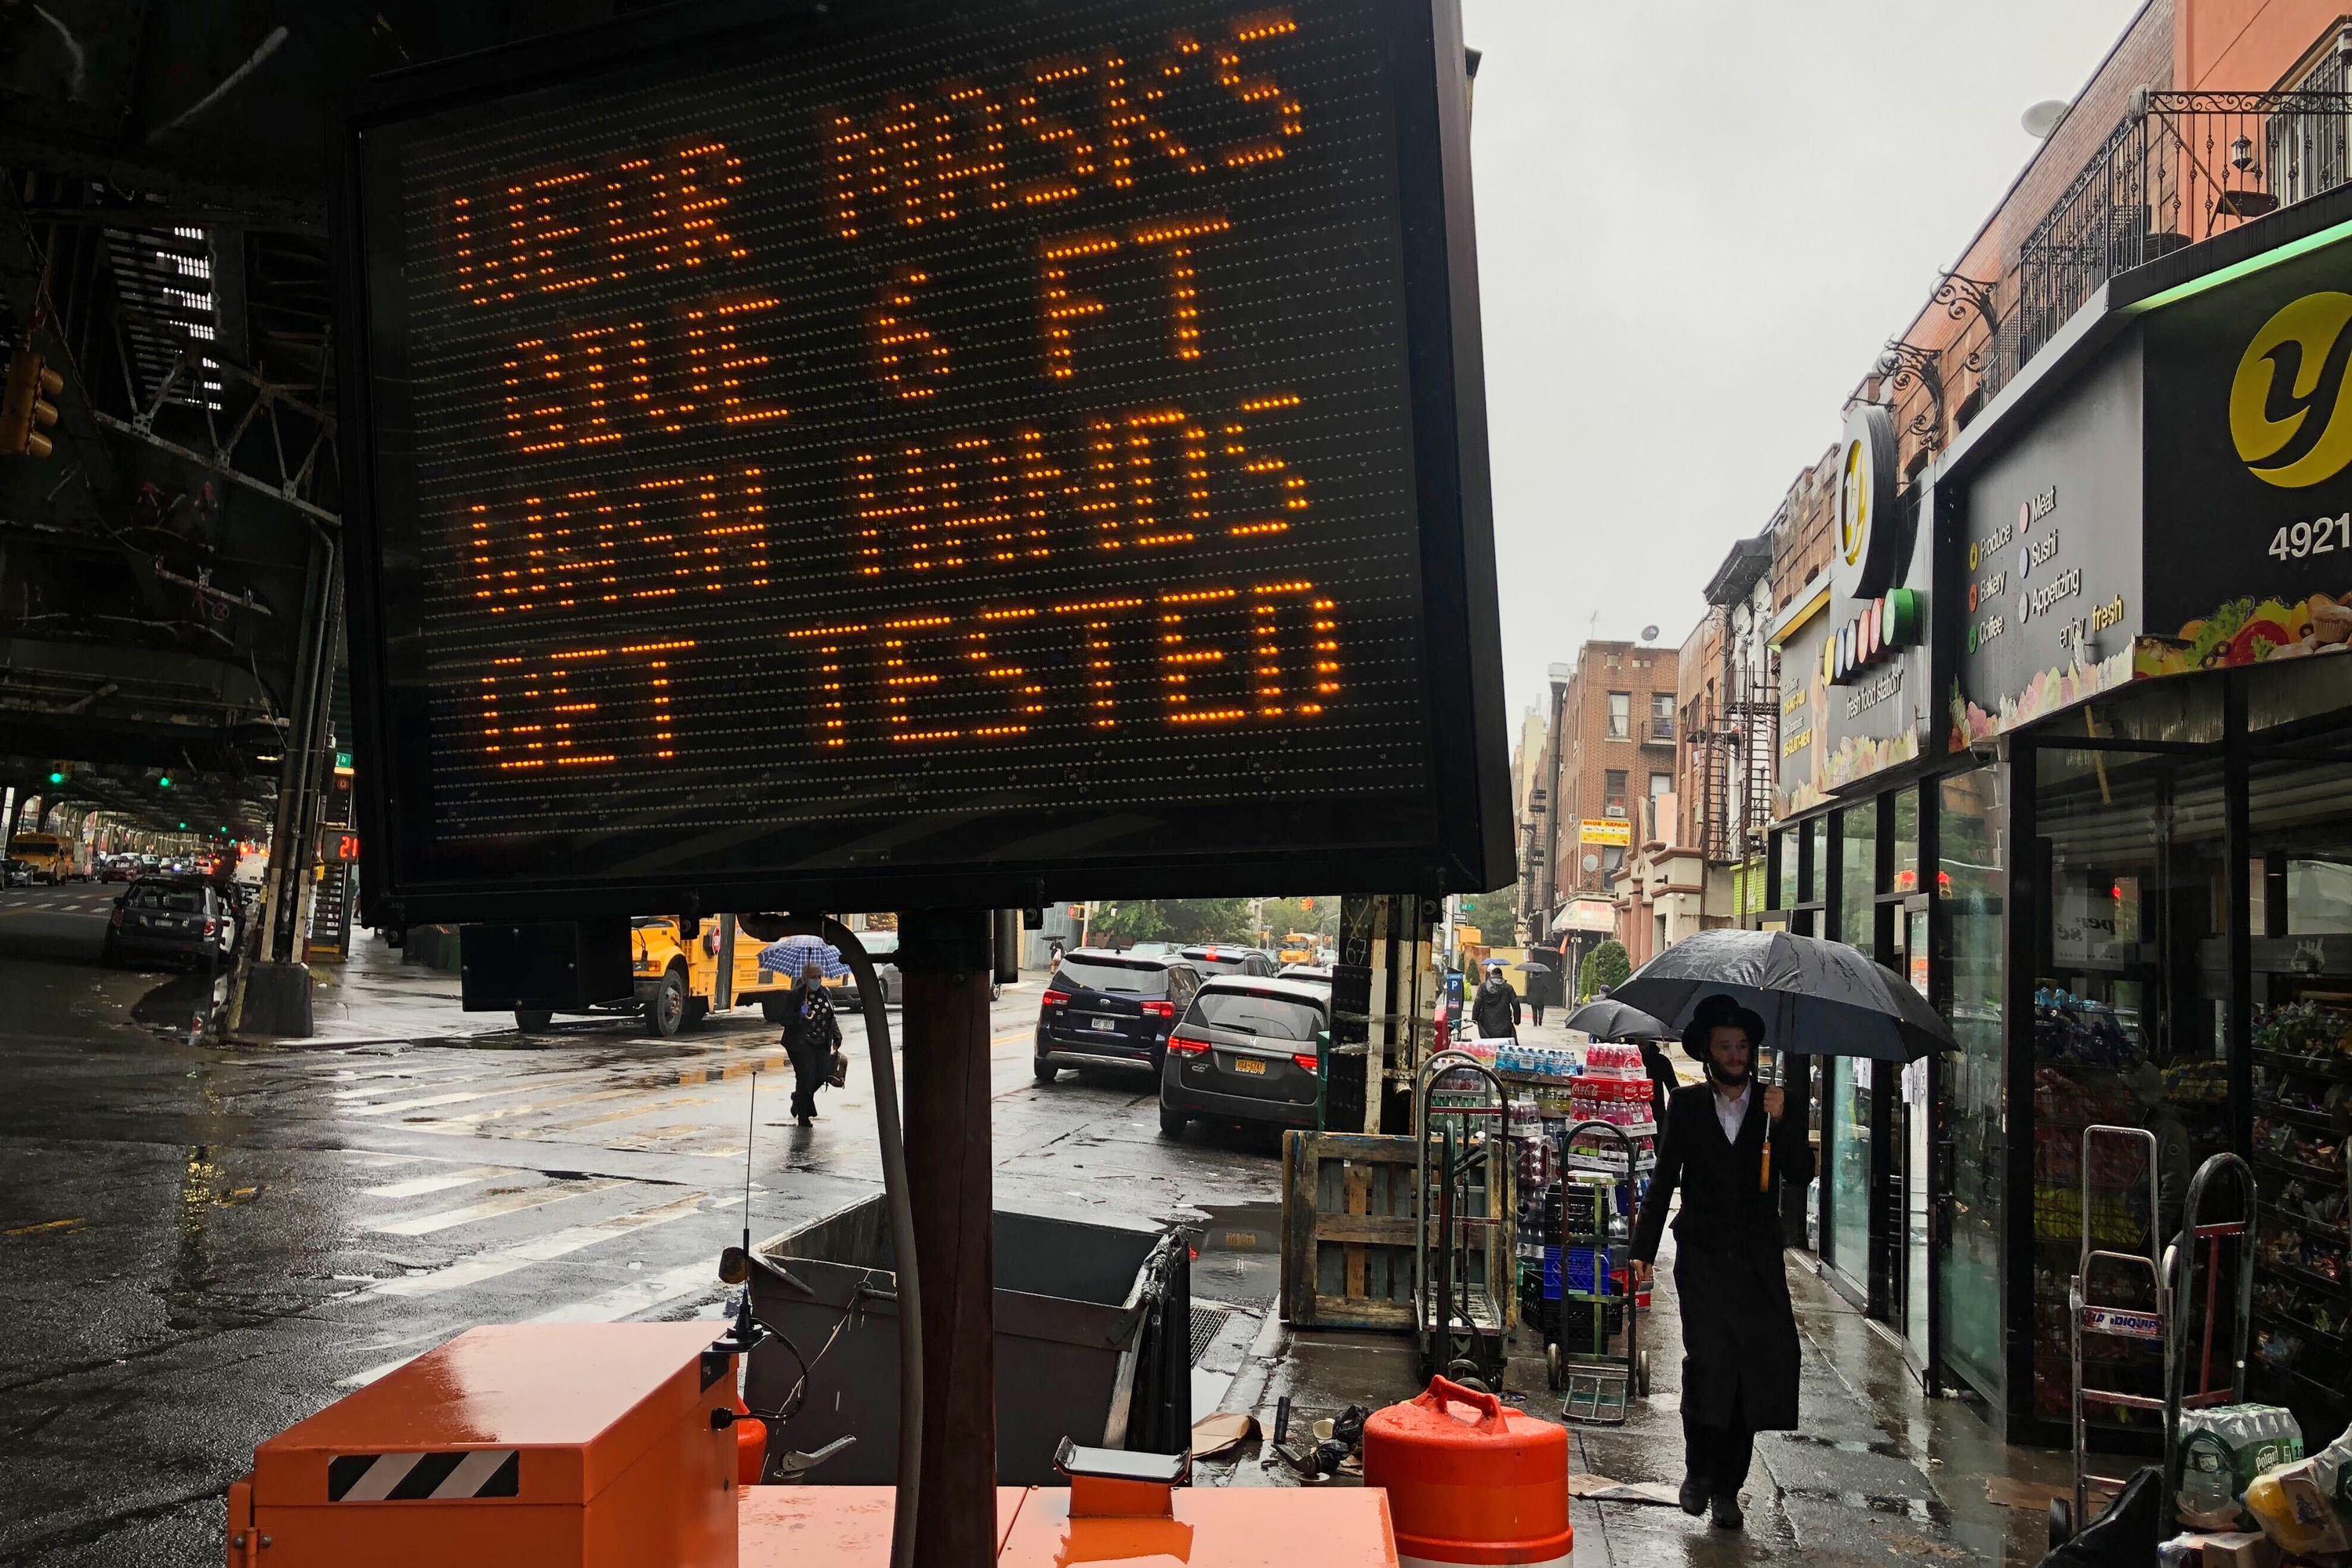 The city placed a sign in Borough Park, Brooklyn imploring residents to follow safety guidelines during the coronavirus outbreak, Oct. 13, 2020.